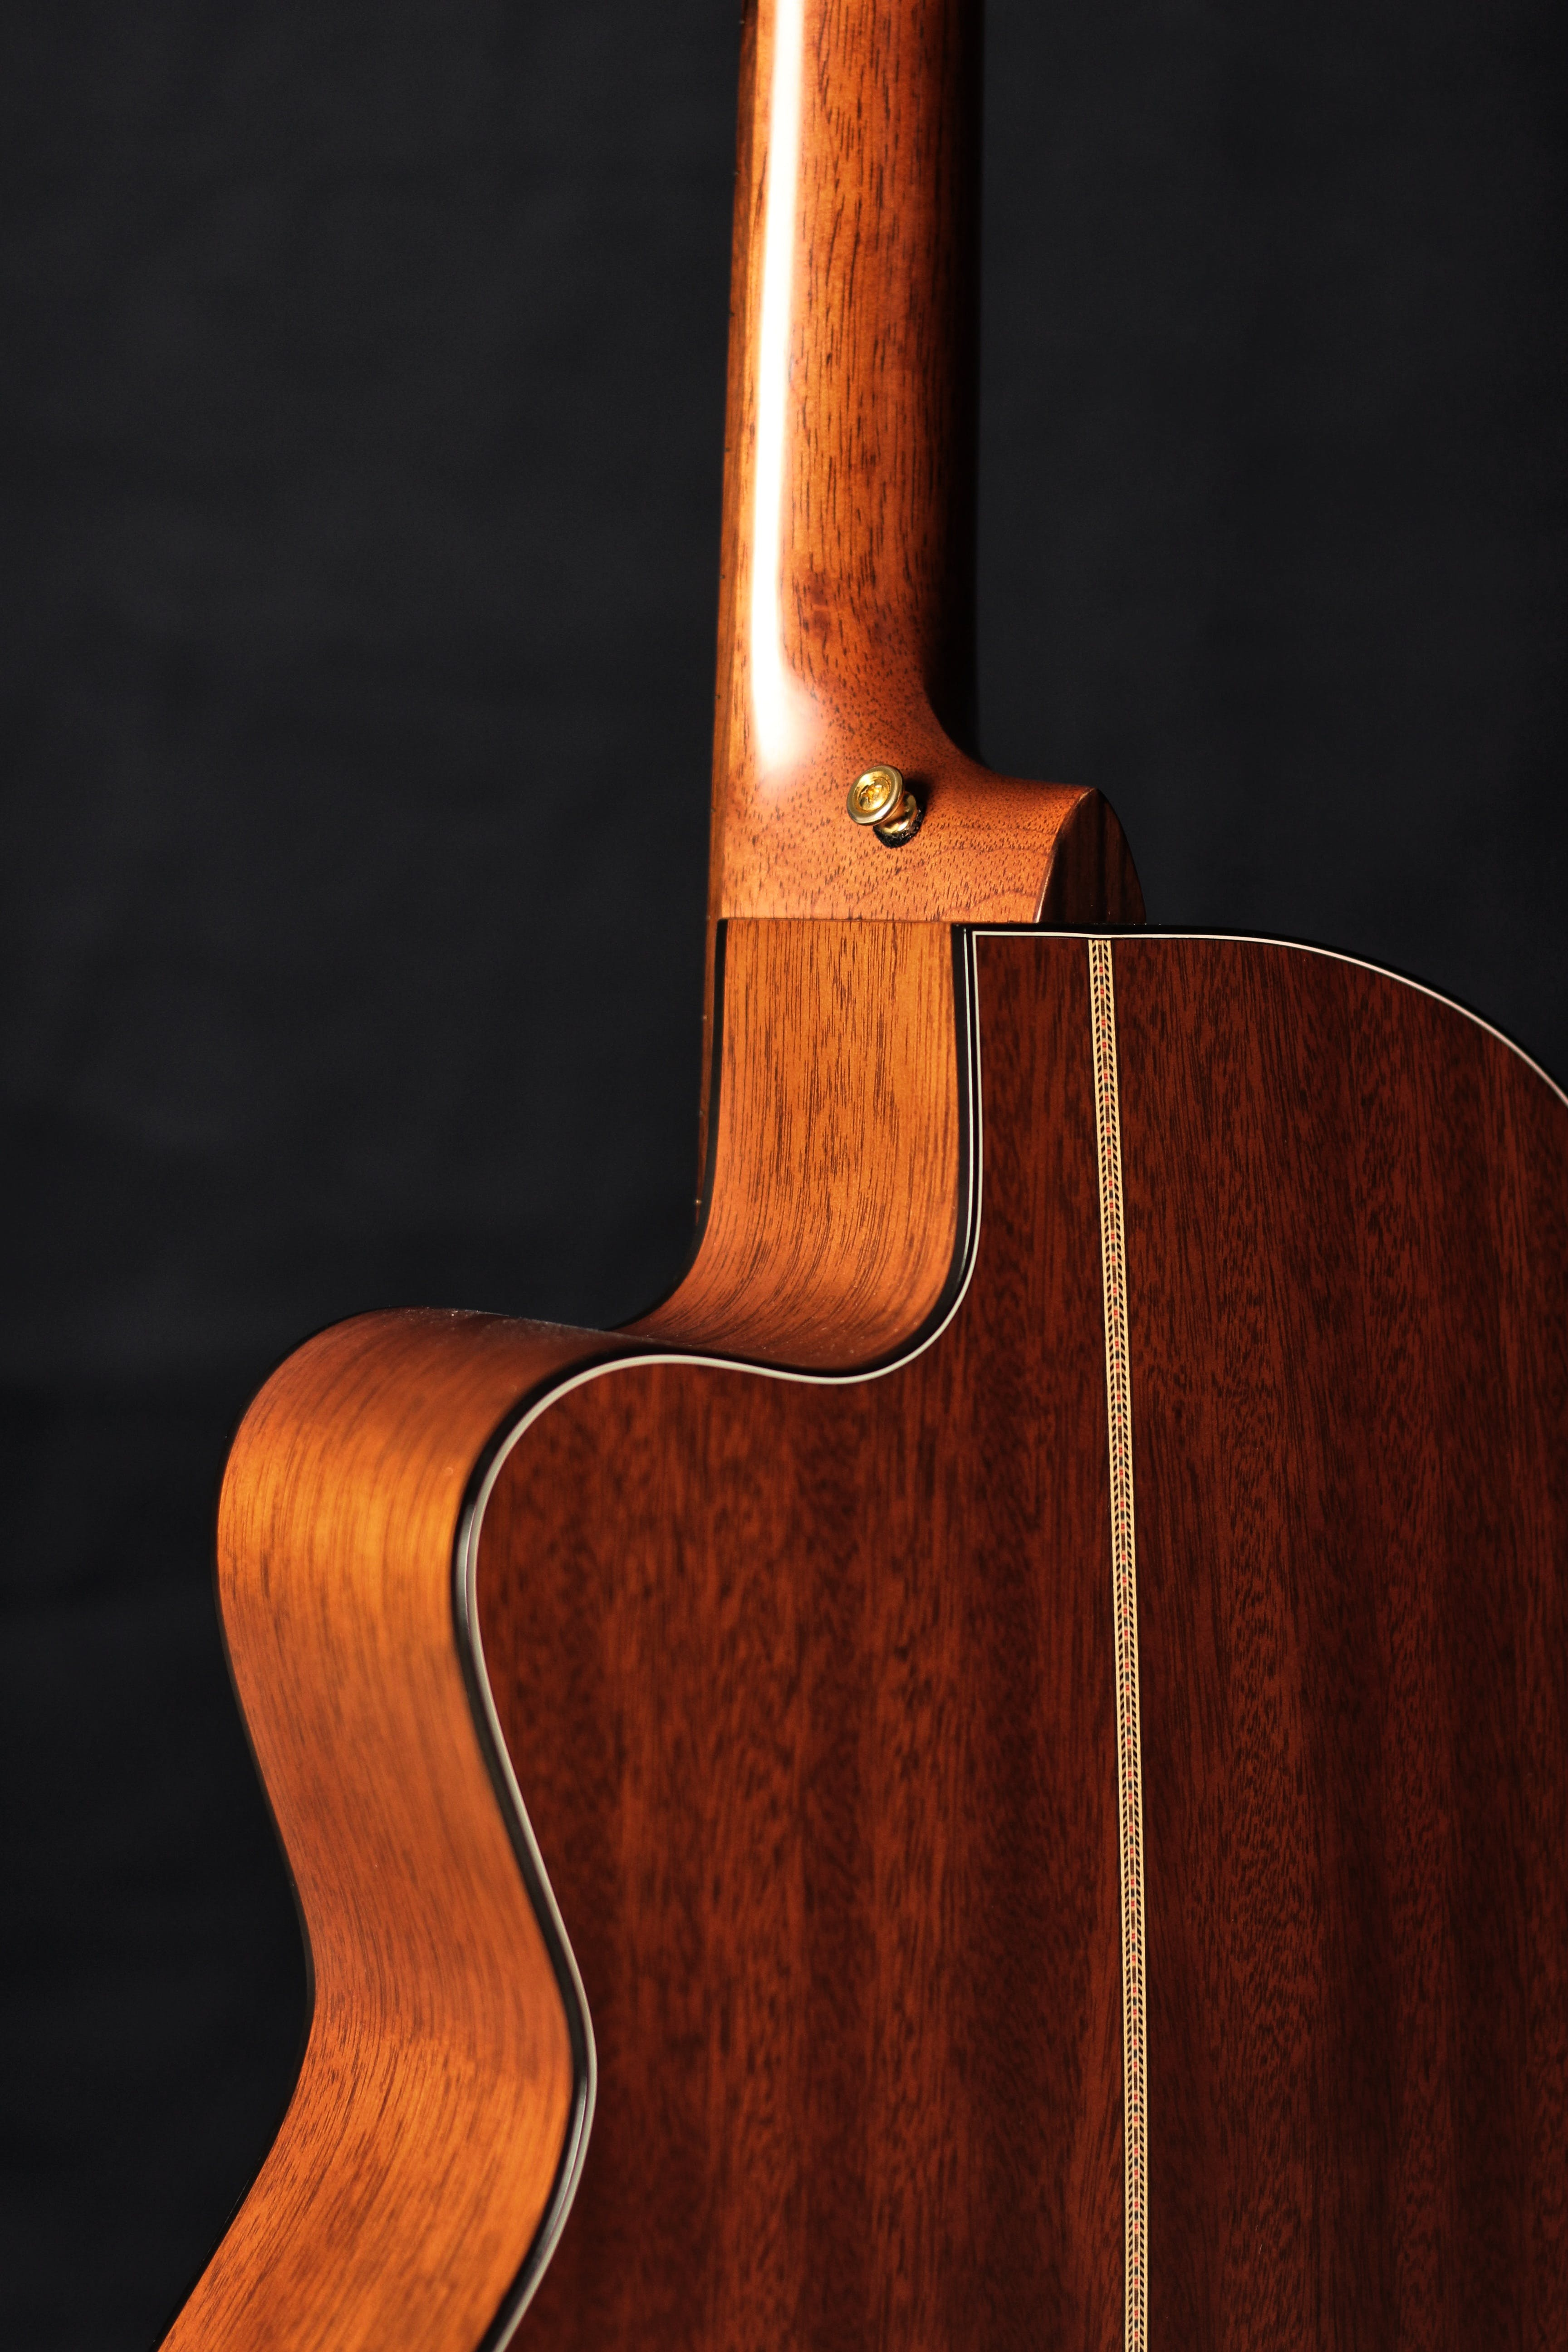 Free stock photo of wood, music, musician, brown